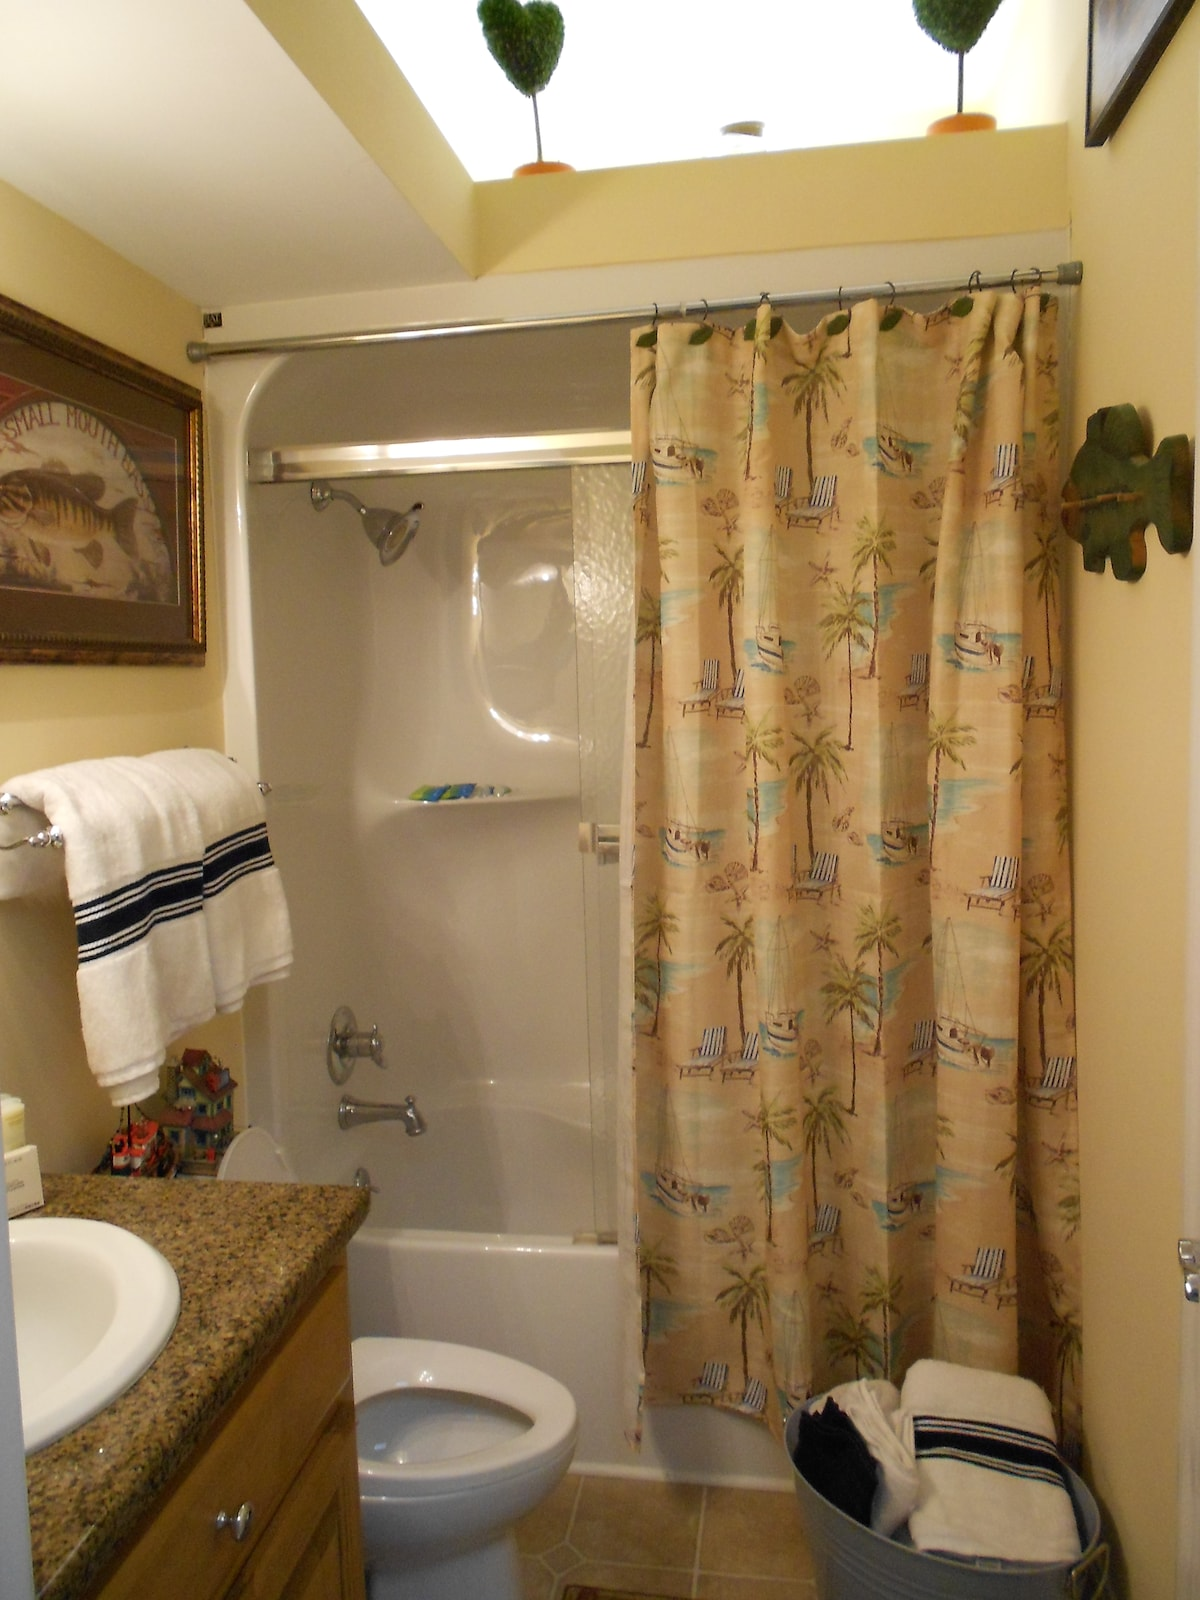 Fully equipped bath, with amenities and hair dryer with nice fluffy towels